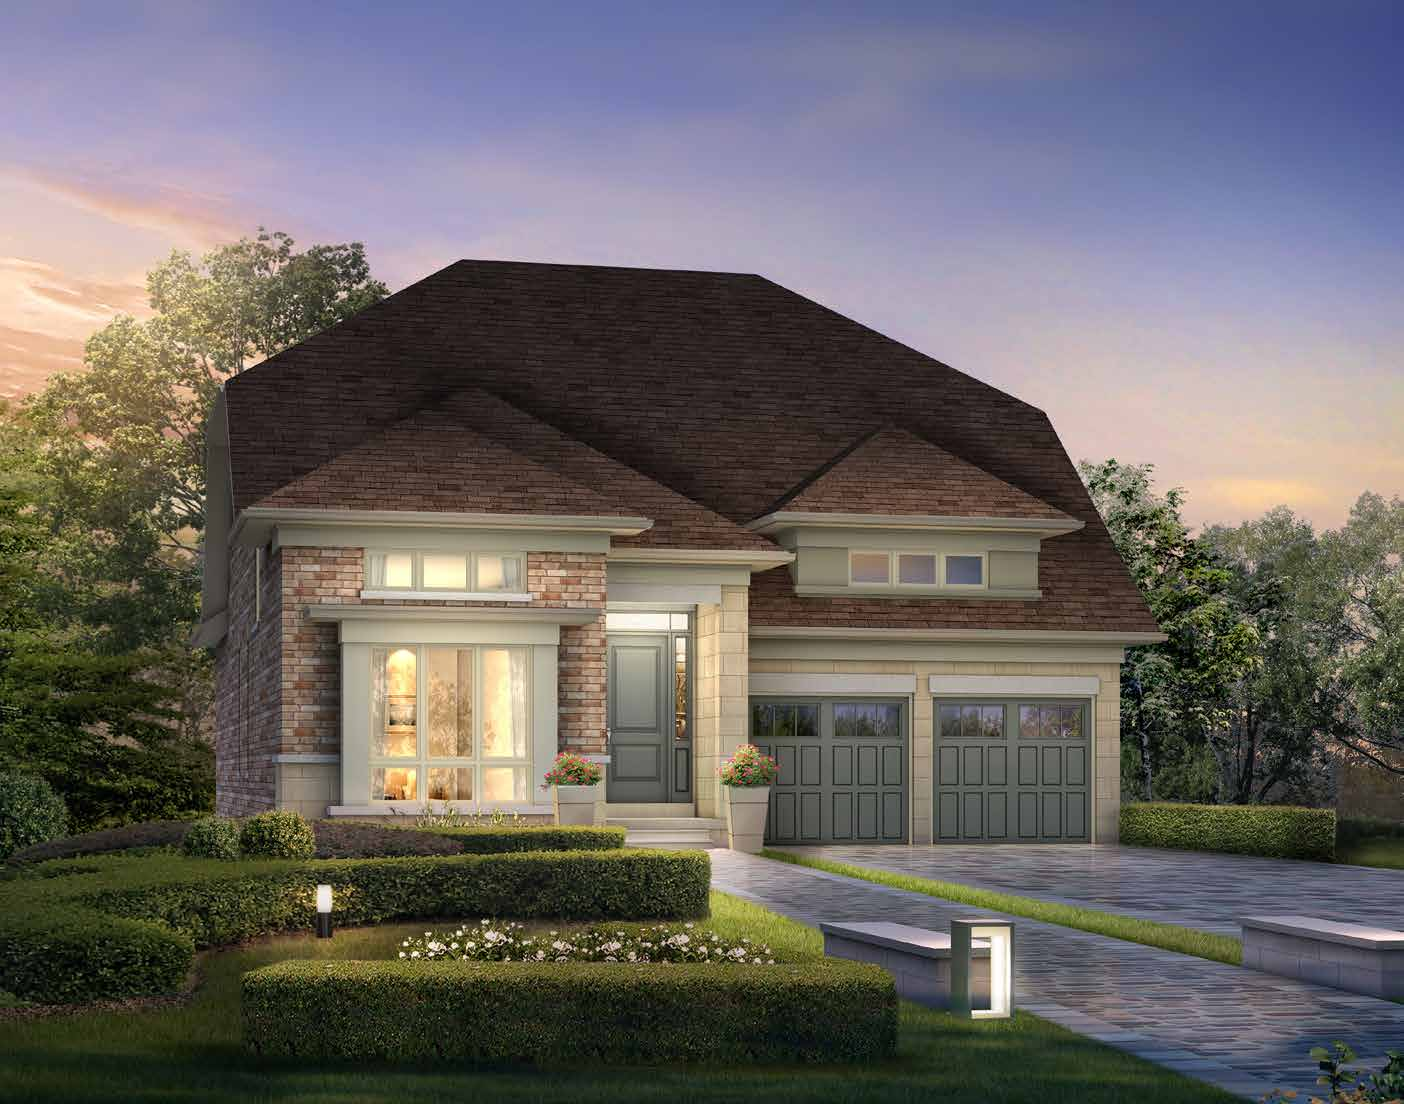 ELEVATION C 3086 sq. ft.